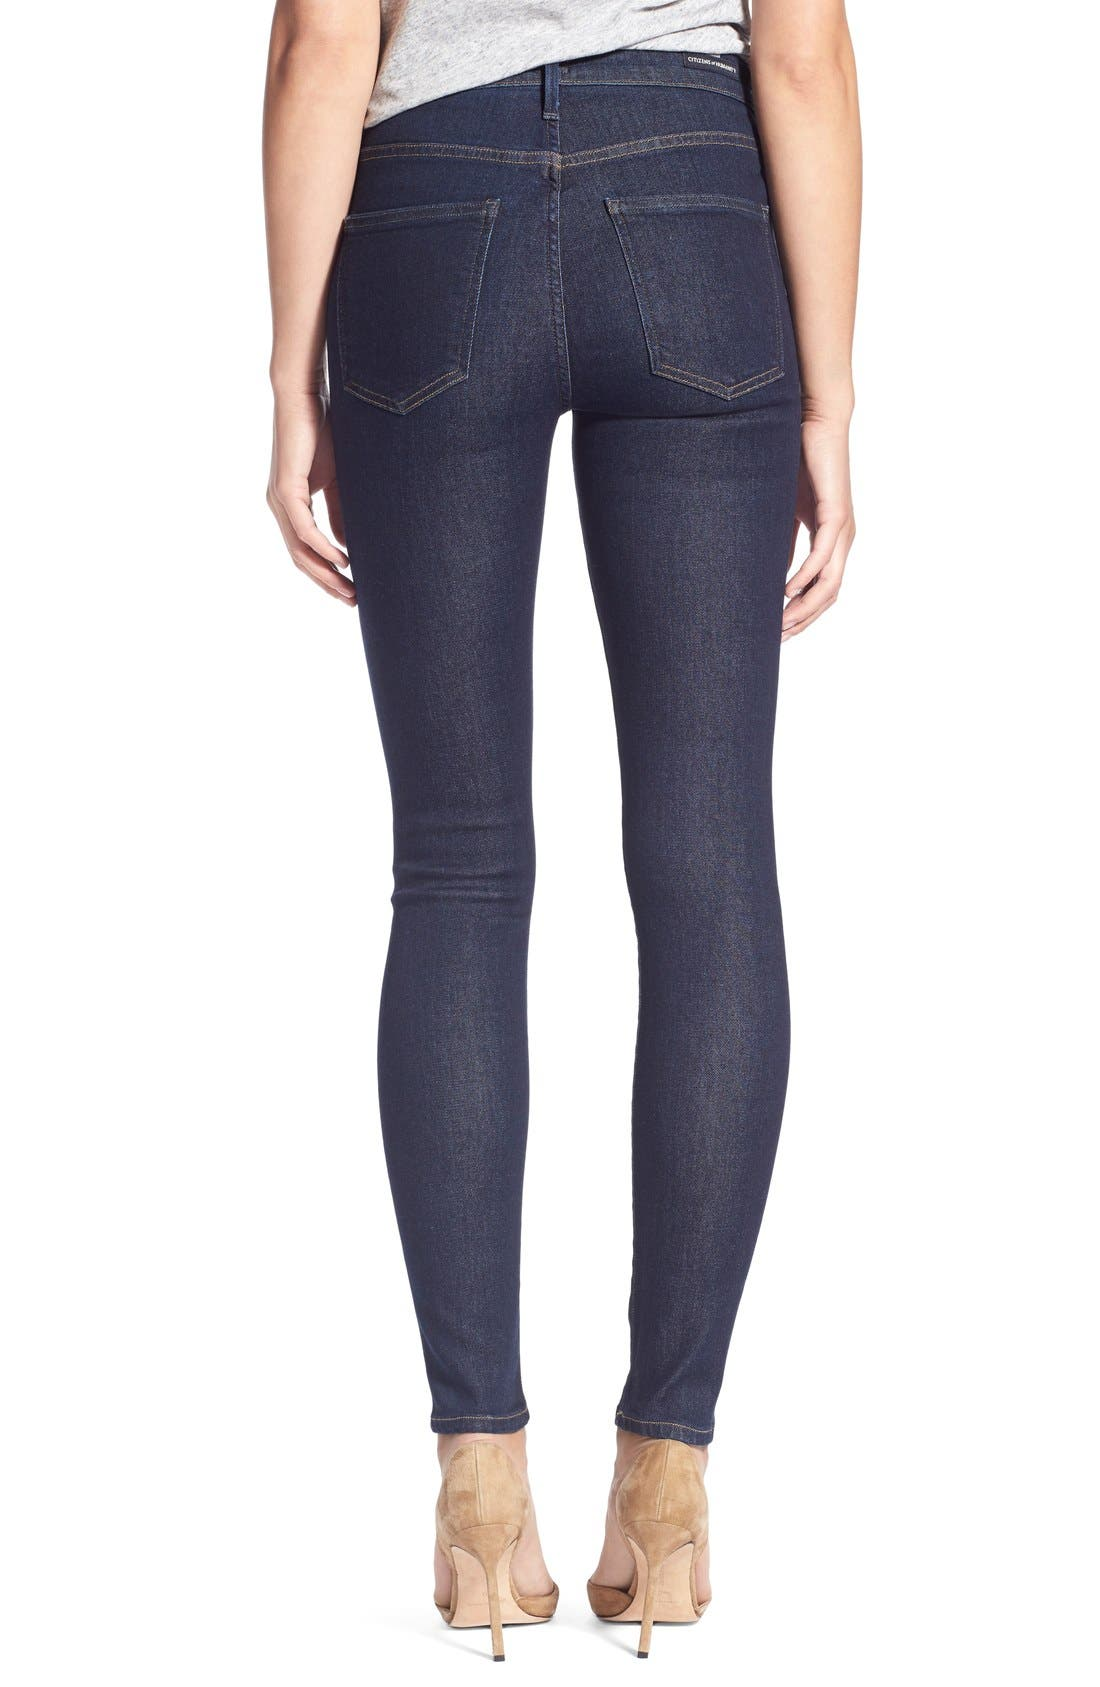 Alternate Image 2  - Citizens of Humanity 'Sculpt - Rocket' High Rise Skinny Jeans (Clean Blue)